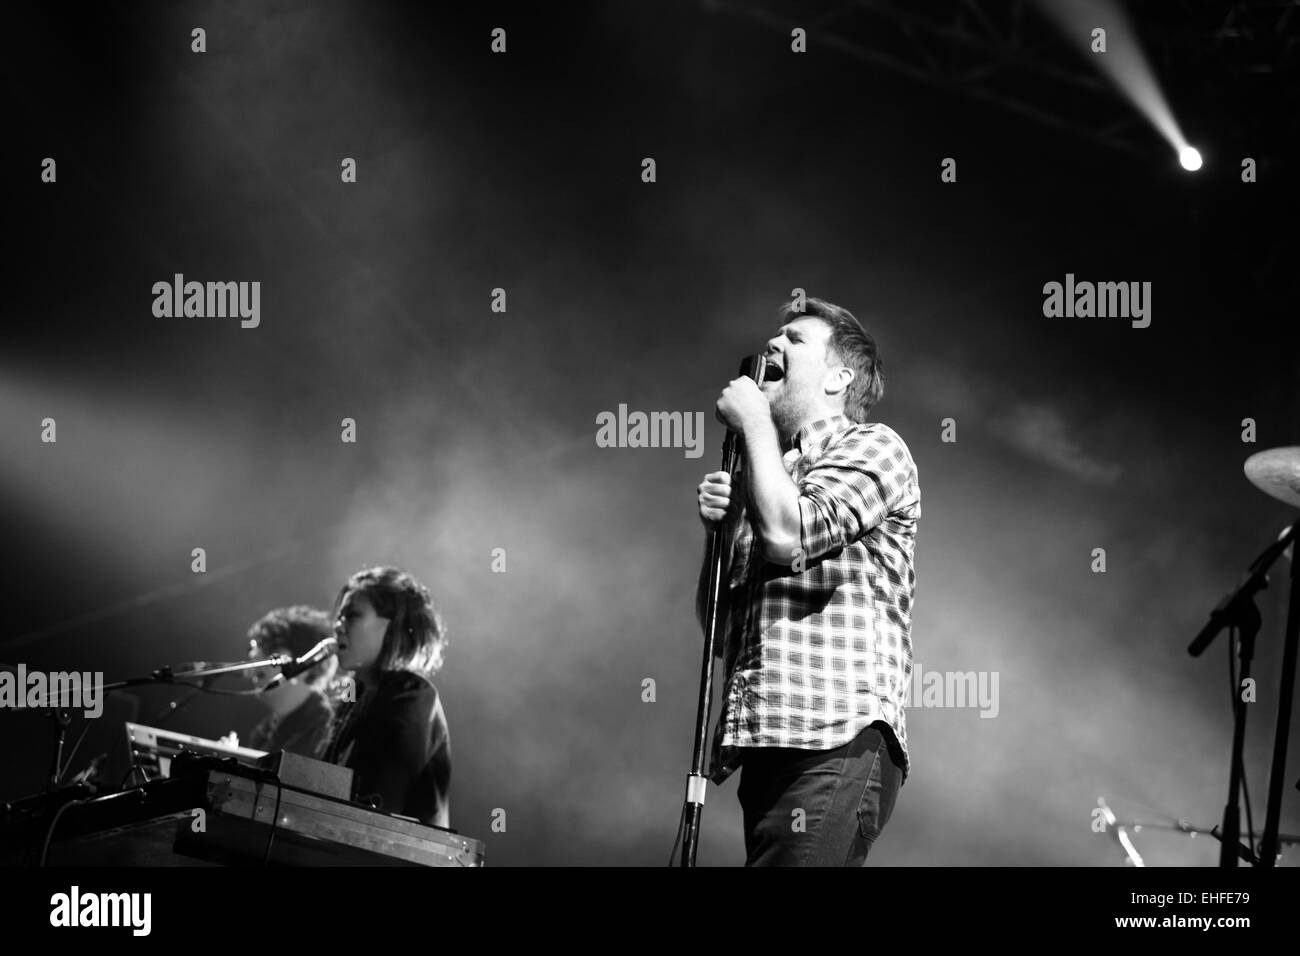 LCD Soundsystem at Bestival on the Isle of Wight Sunday 12th September 2010. - Stock Image